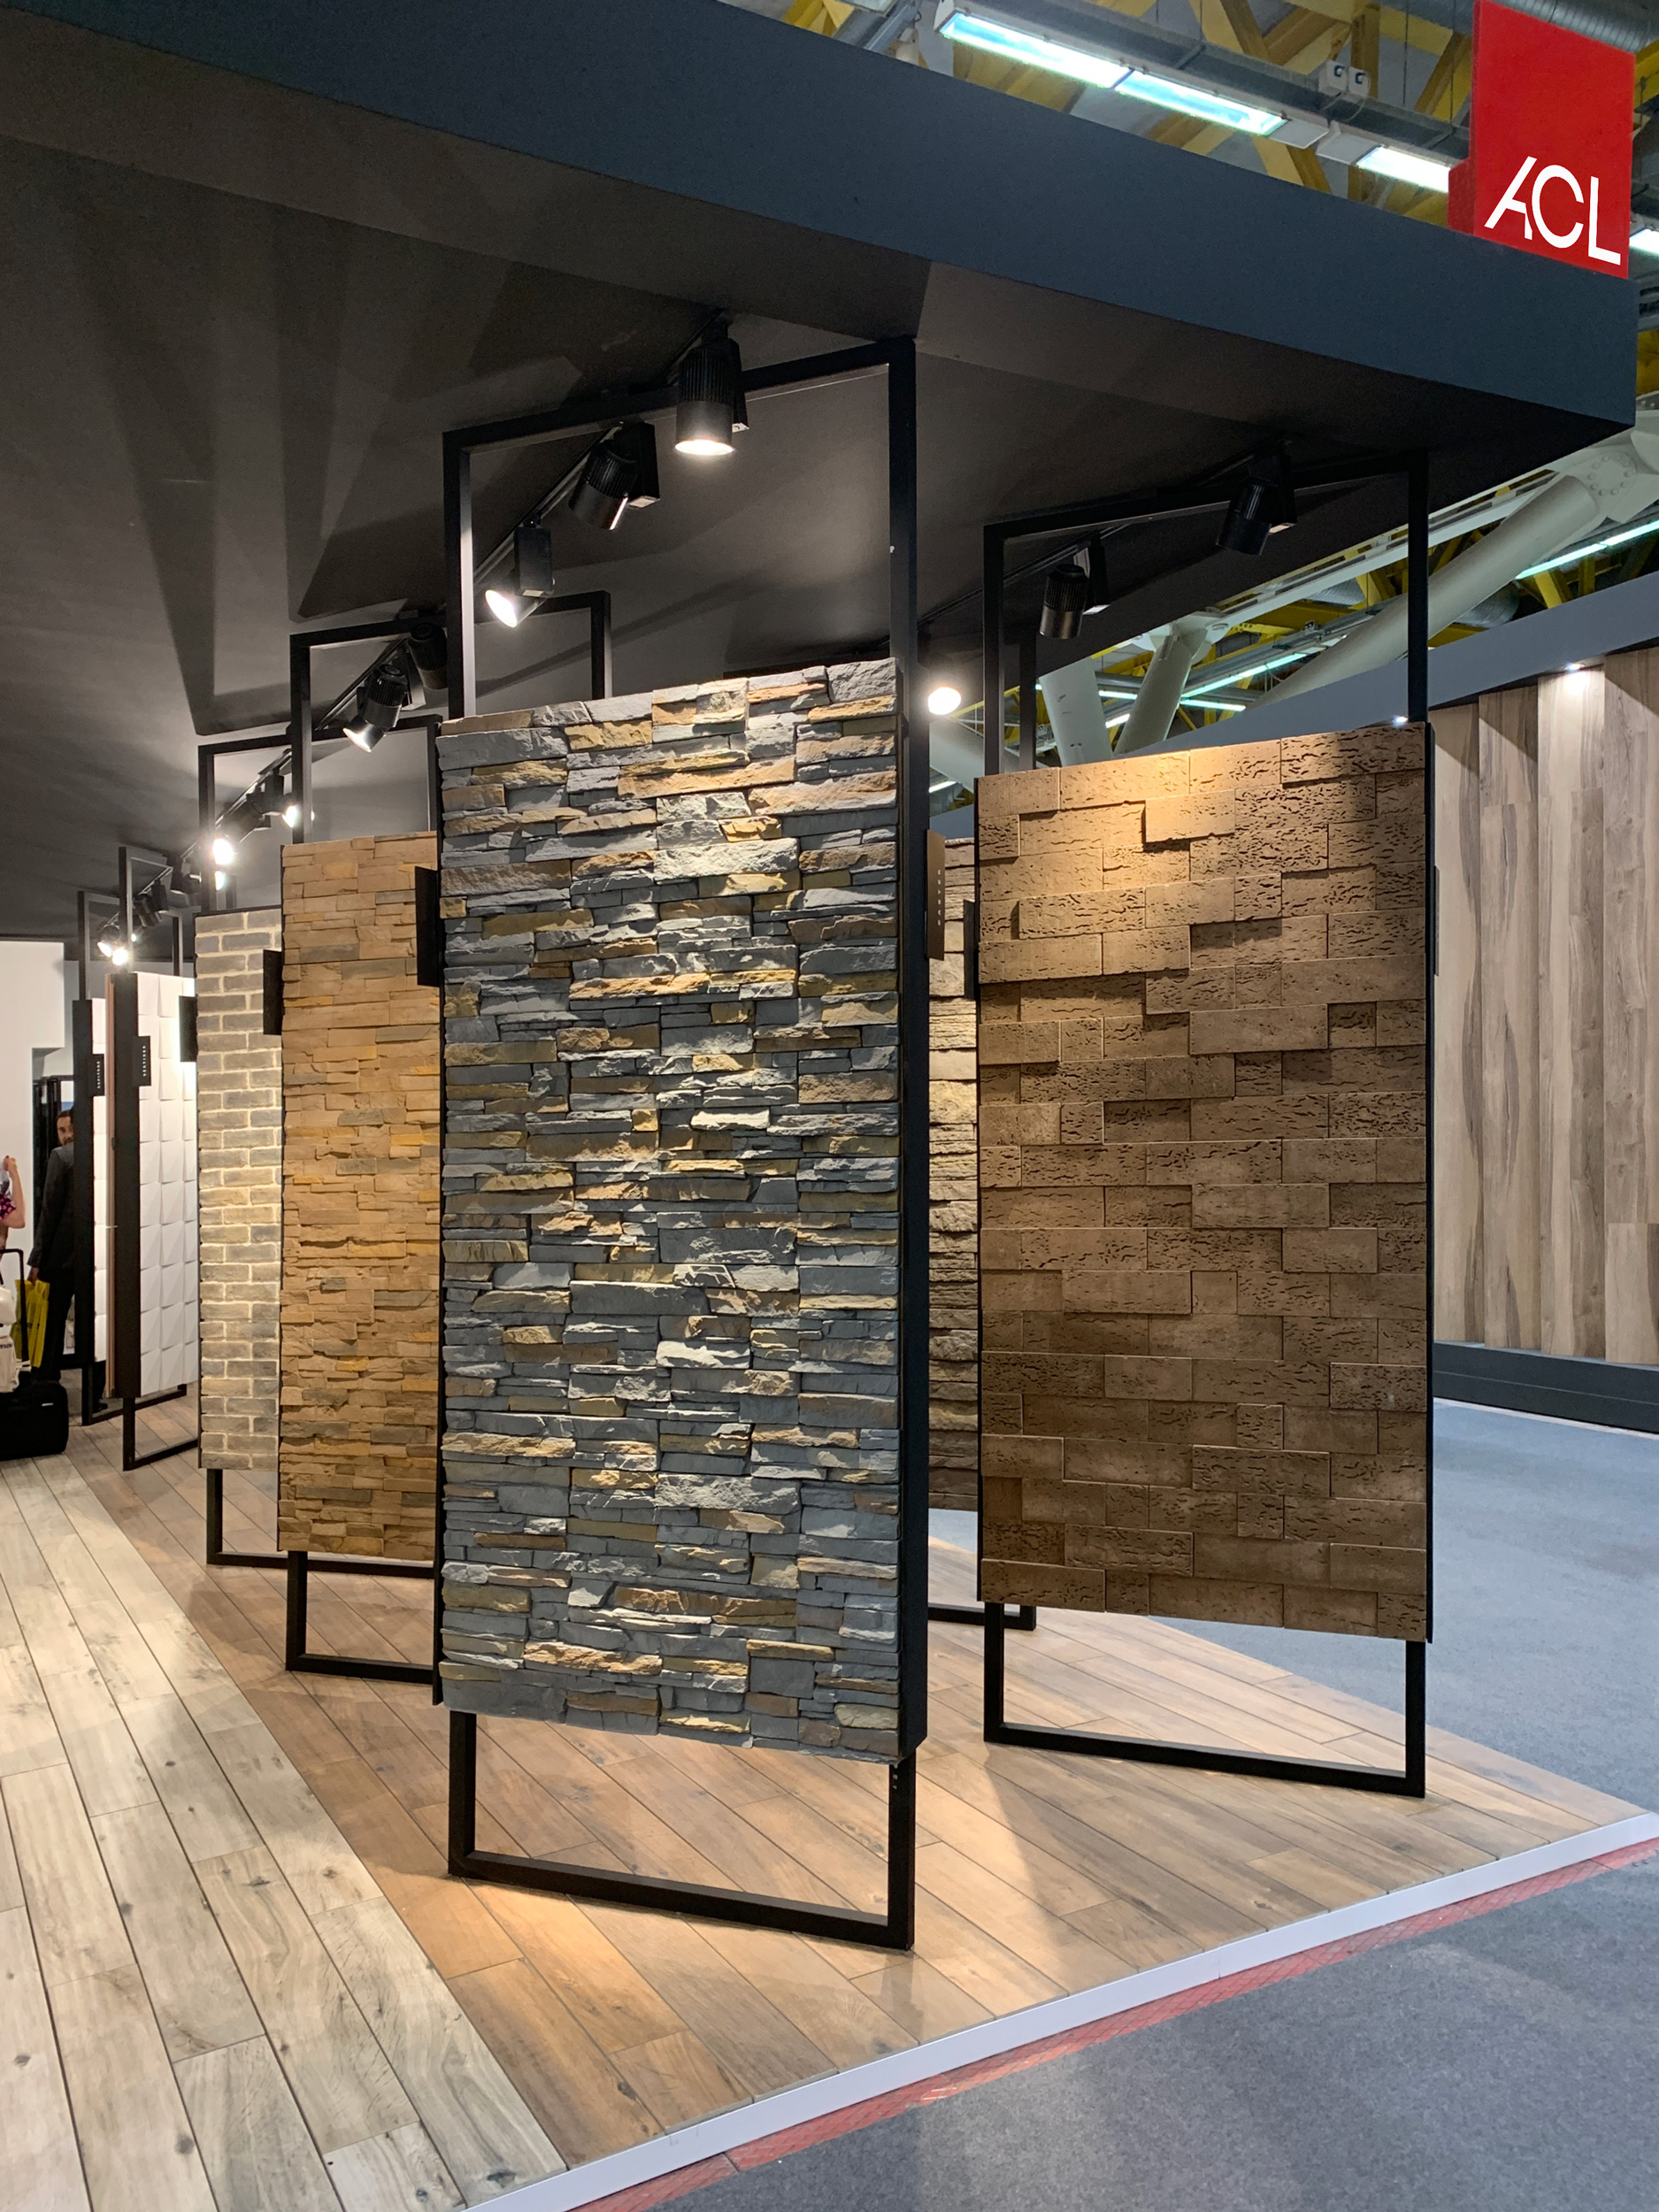 ACL Cersaie Stand